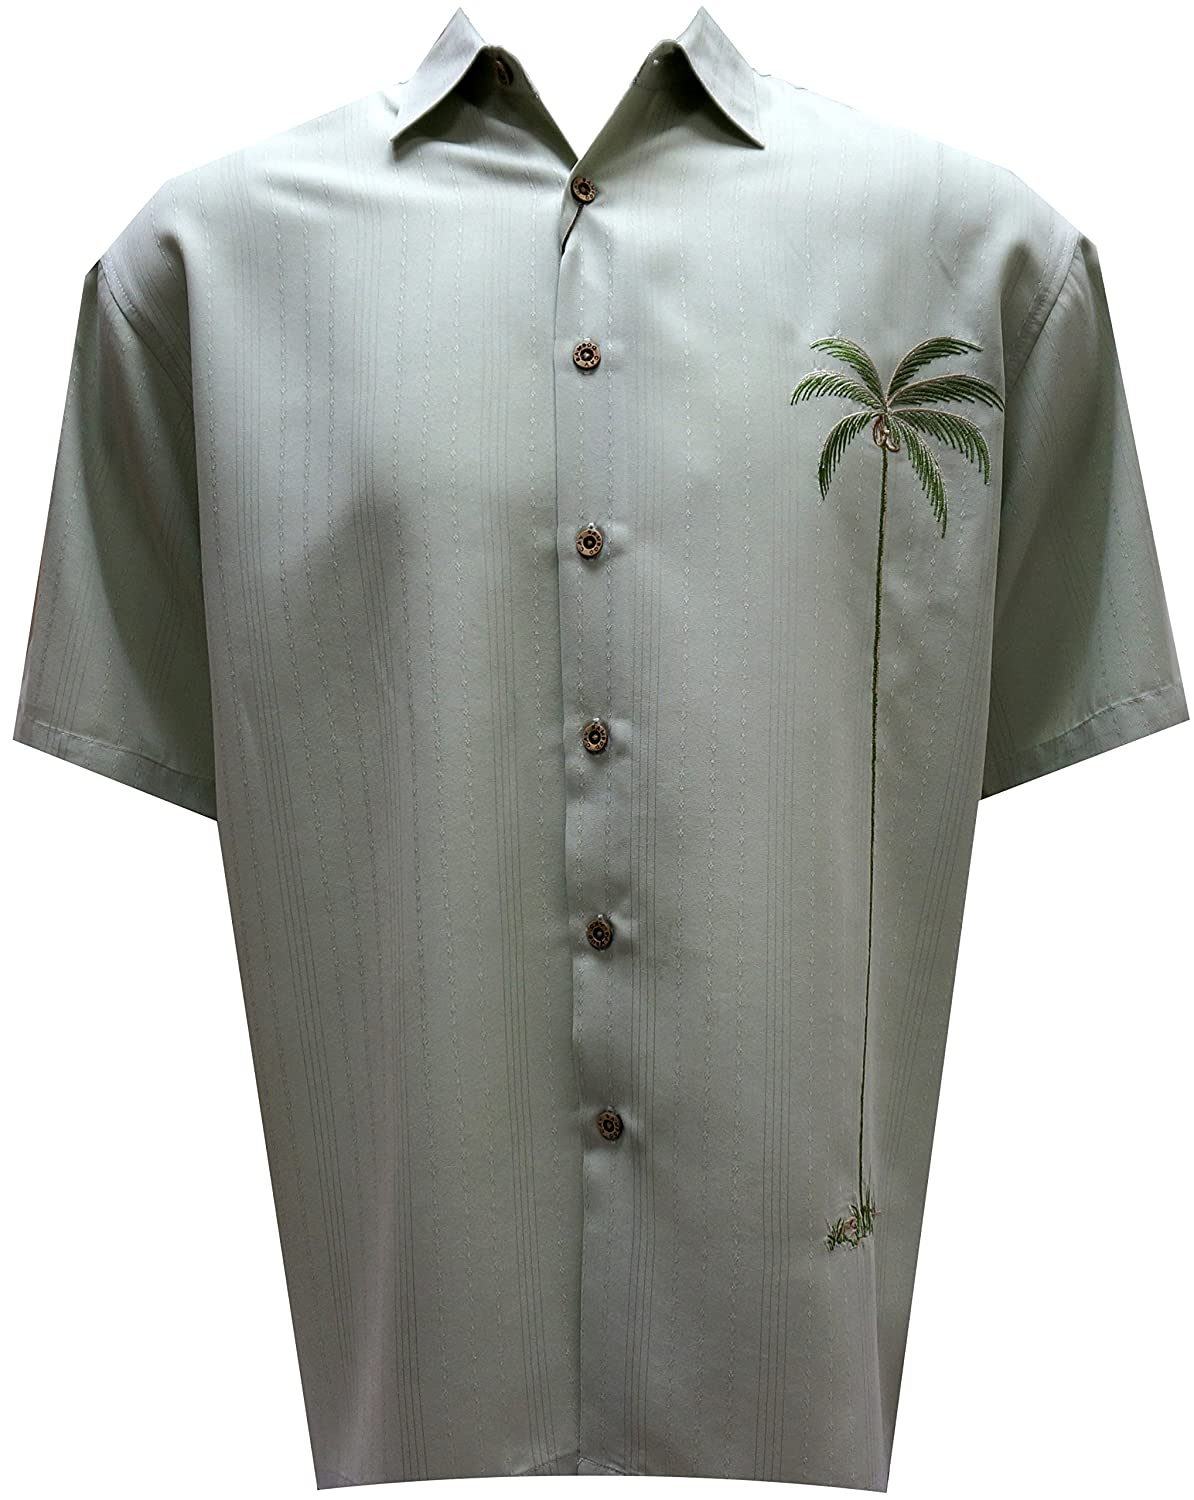 Bamboo Cay Men's Single Palm, Tropical Style Casual Embroidered Shirt